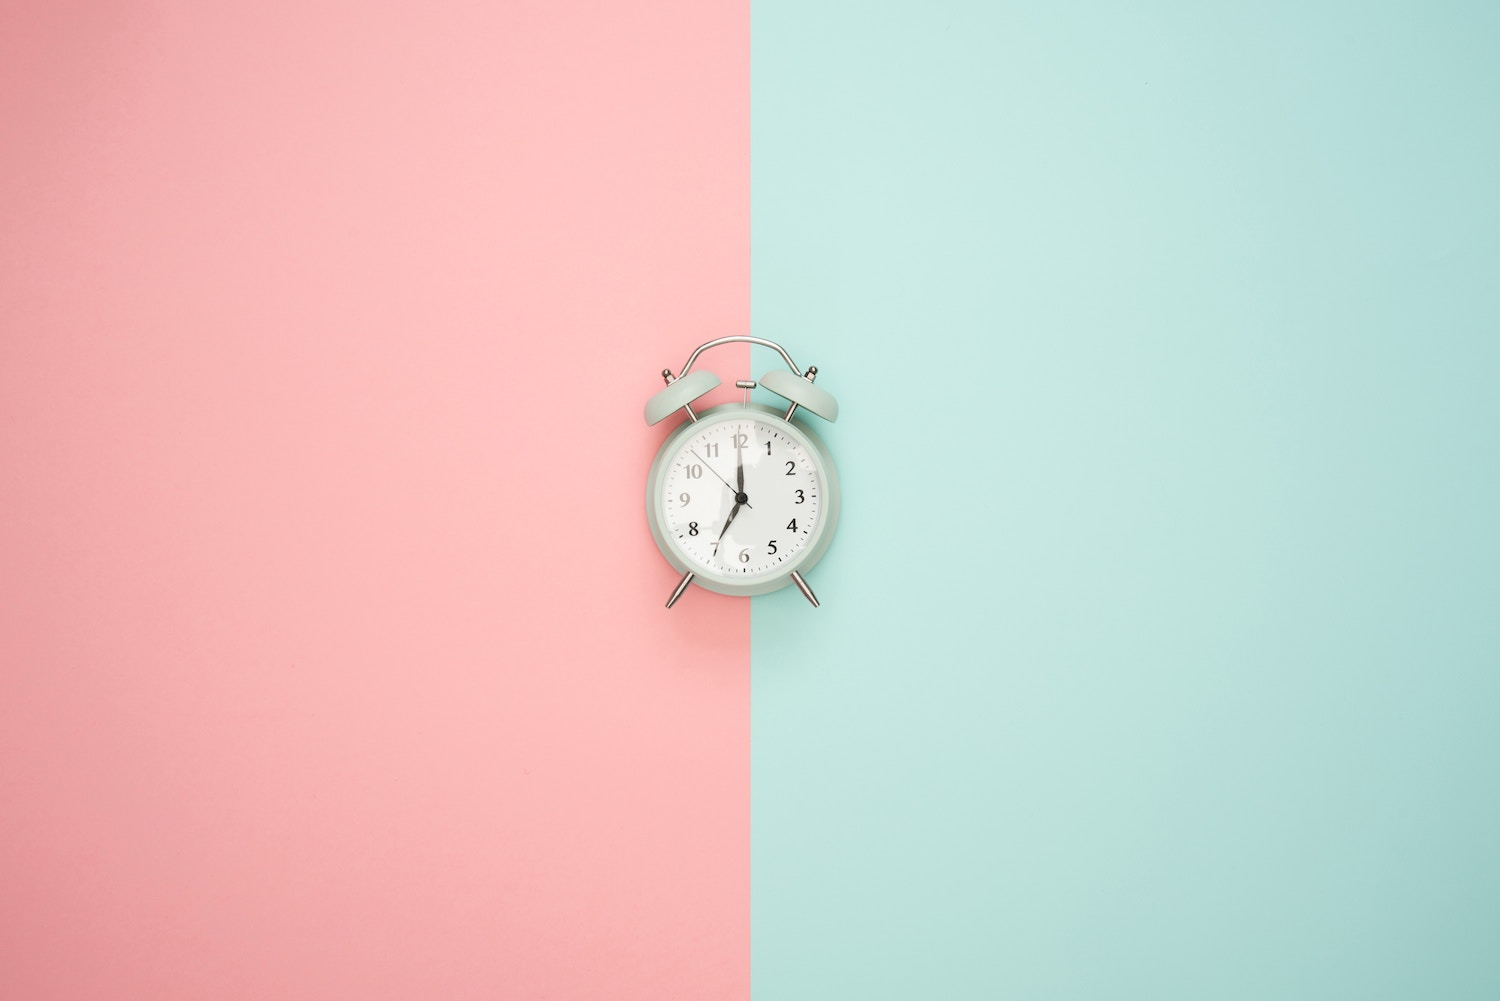 Time Audit Set A Timer 5 Ways to be More Productive Work Smarter Not Harder